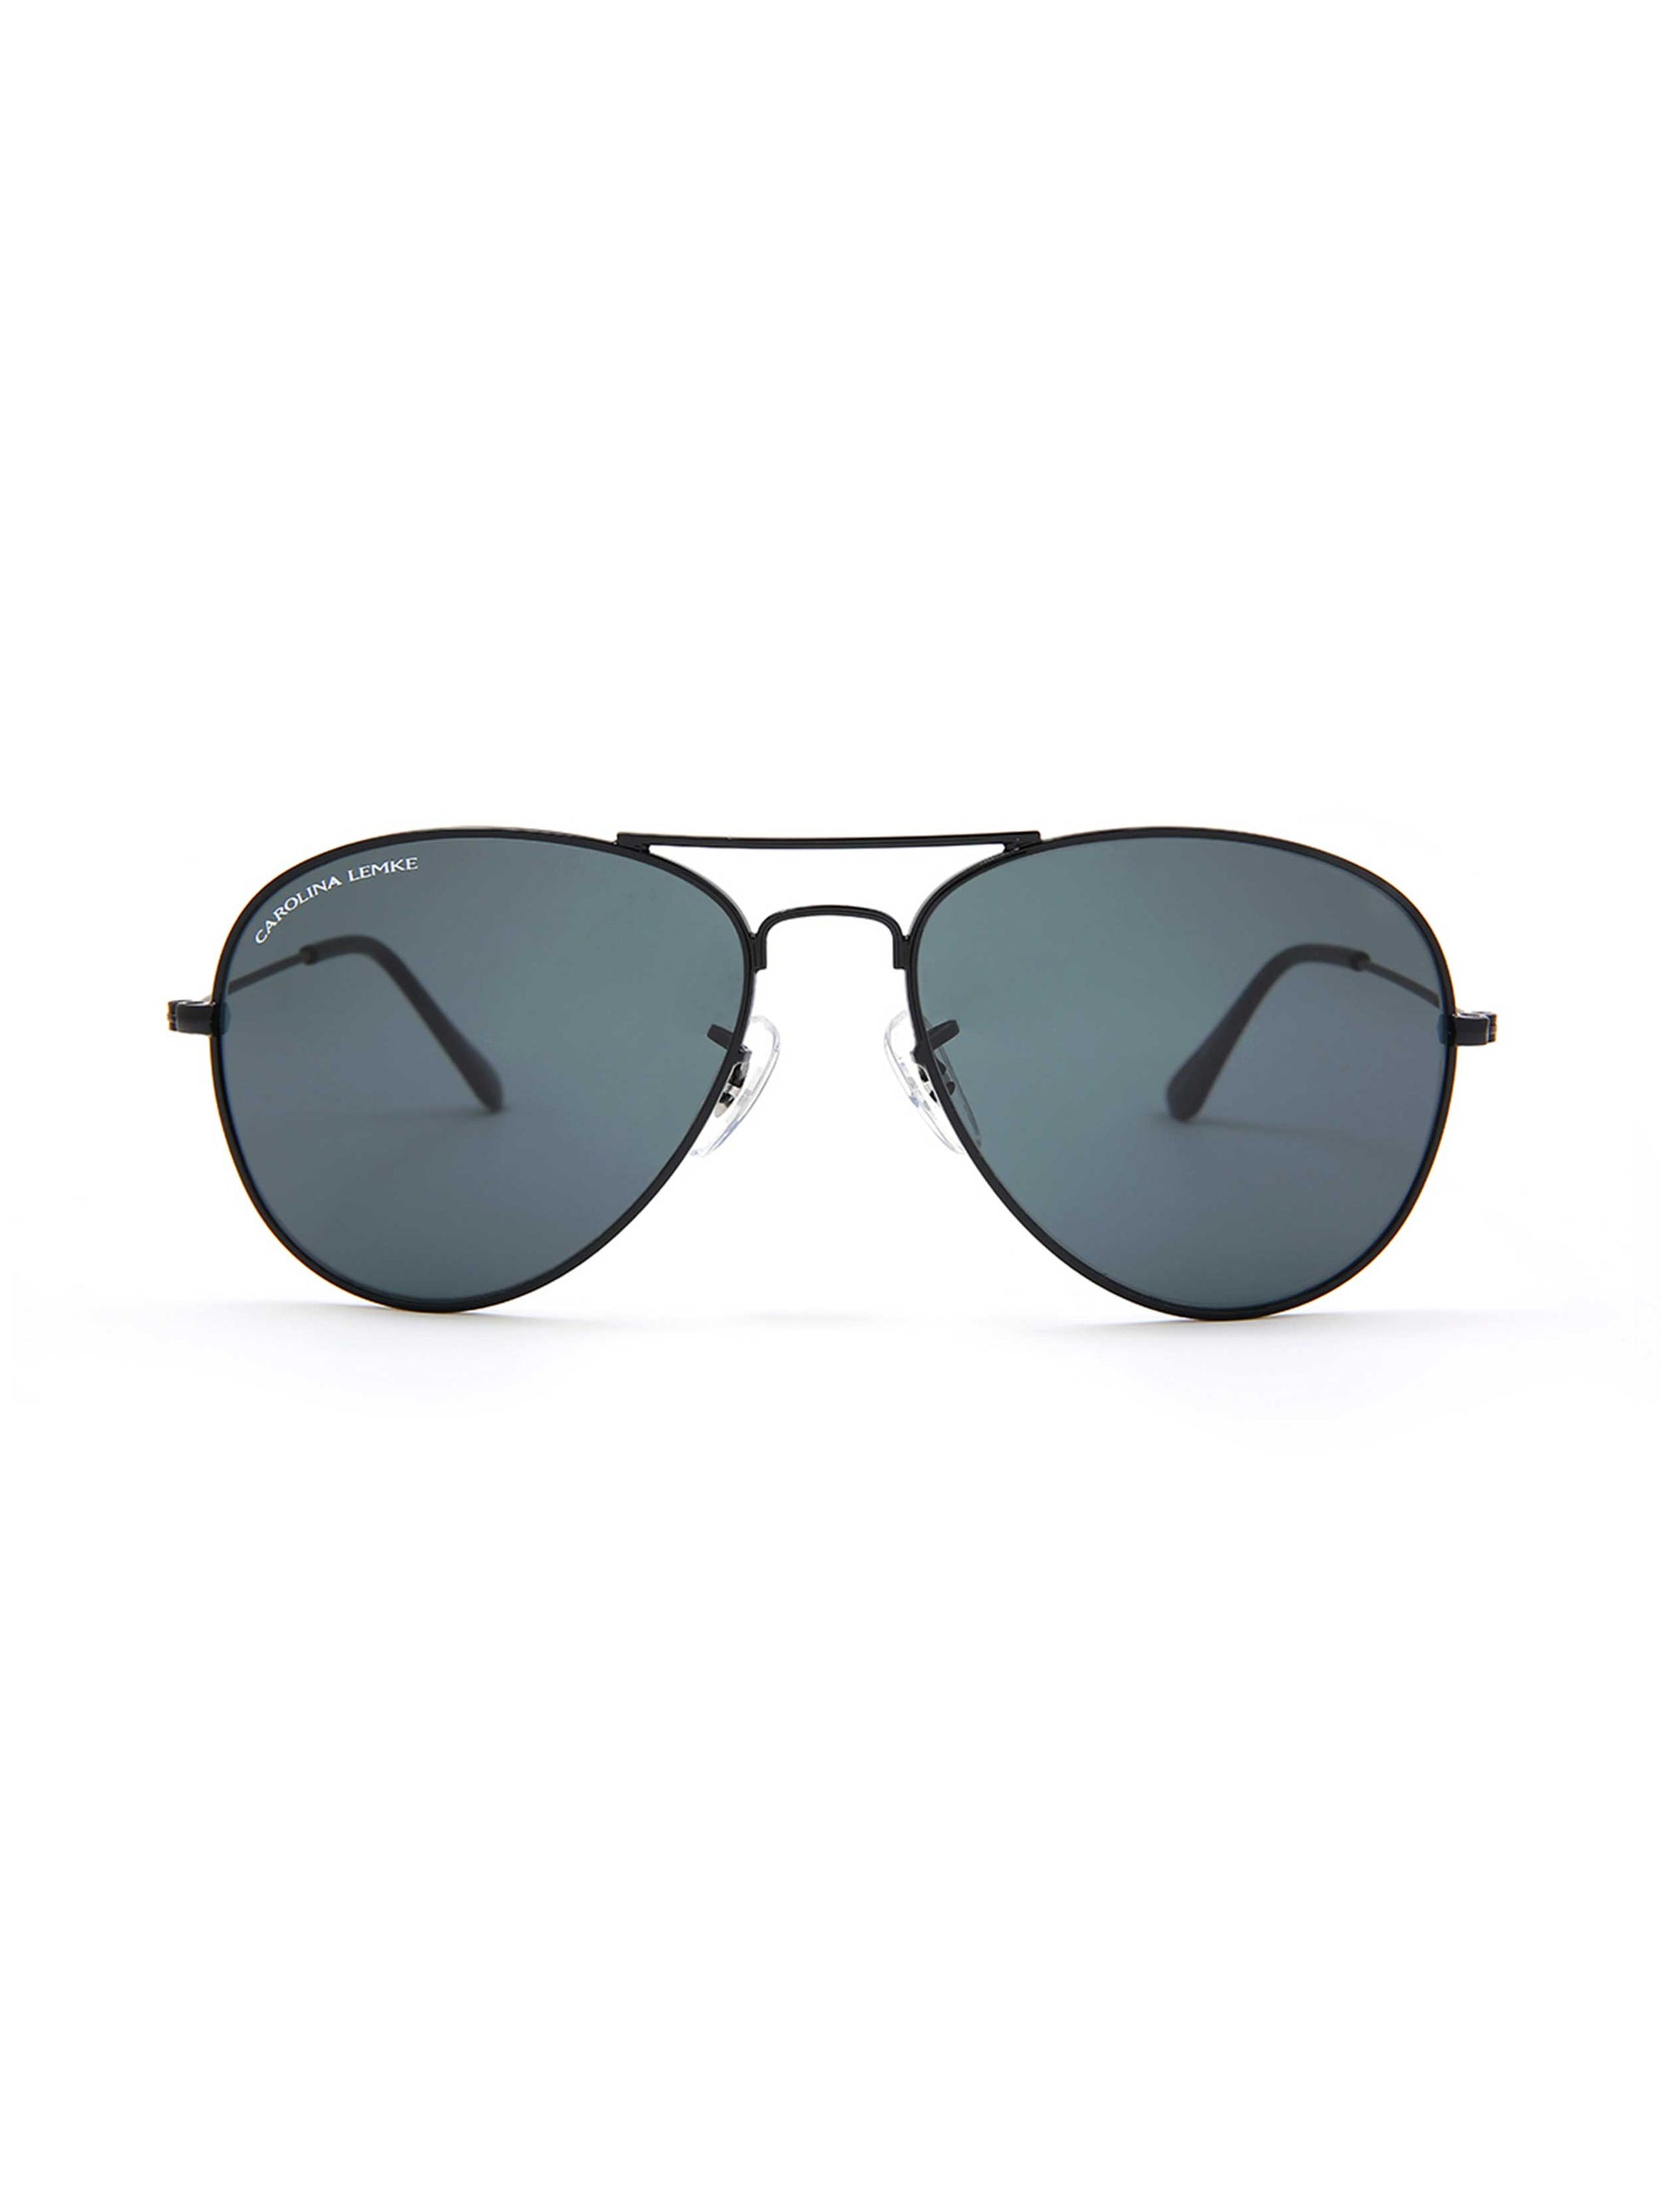 Lentes Carolina Lemke CL6513 02